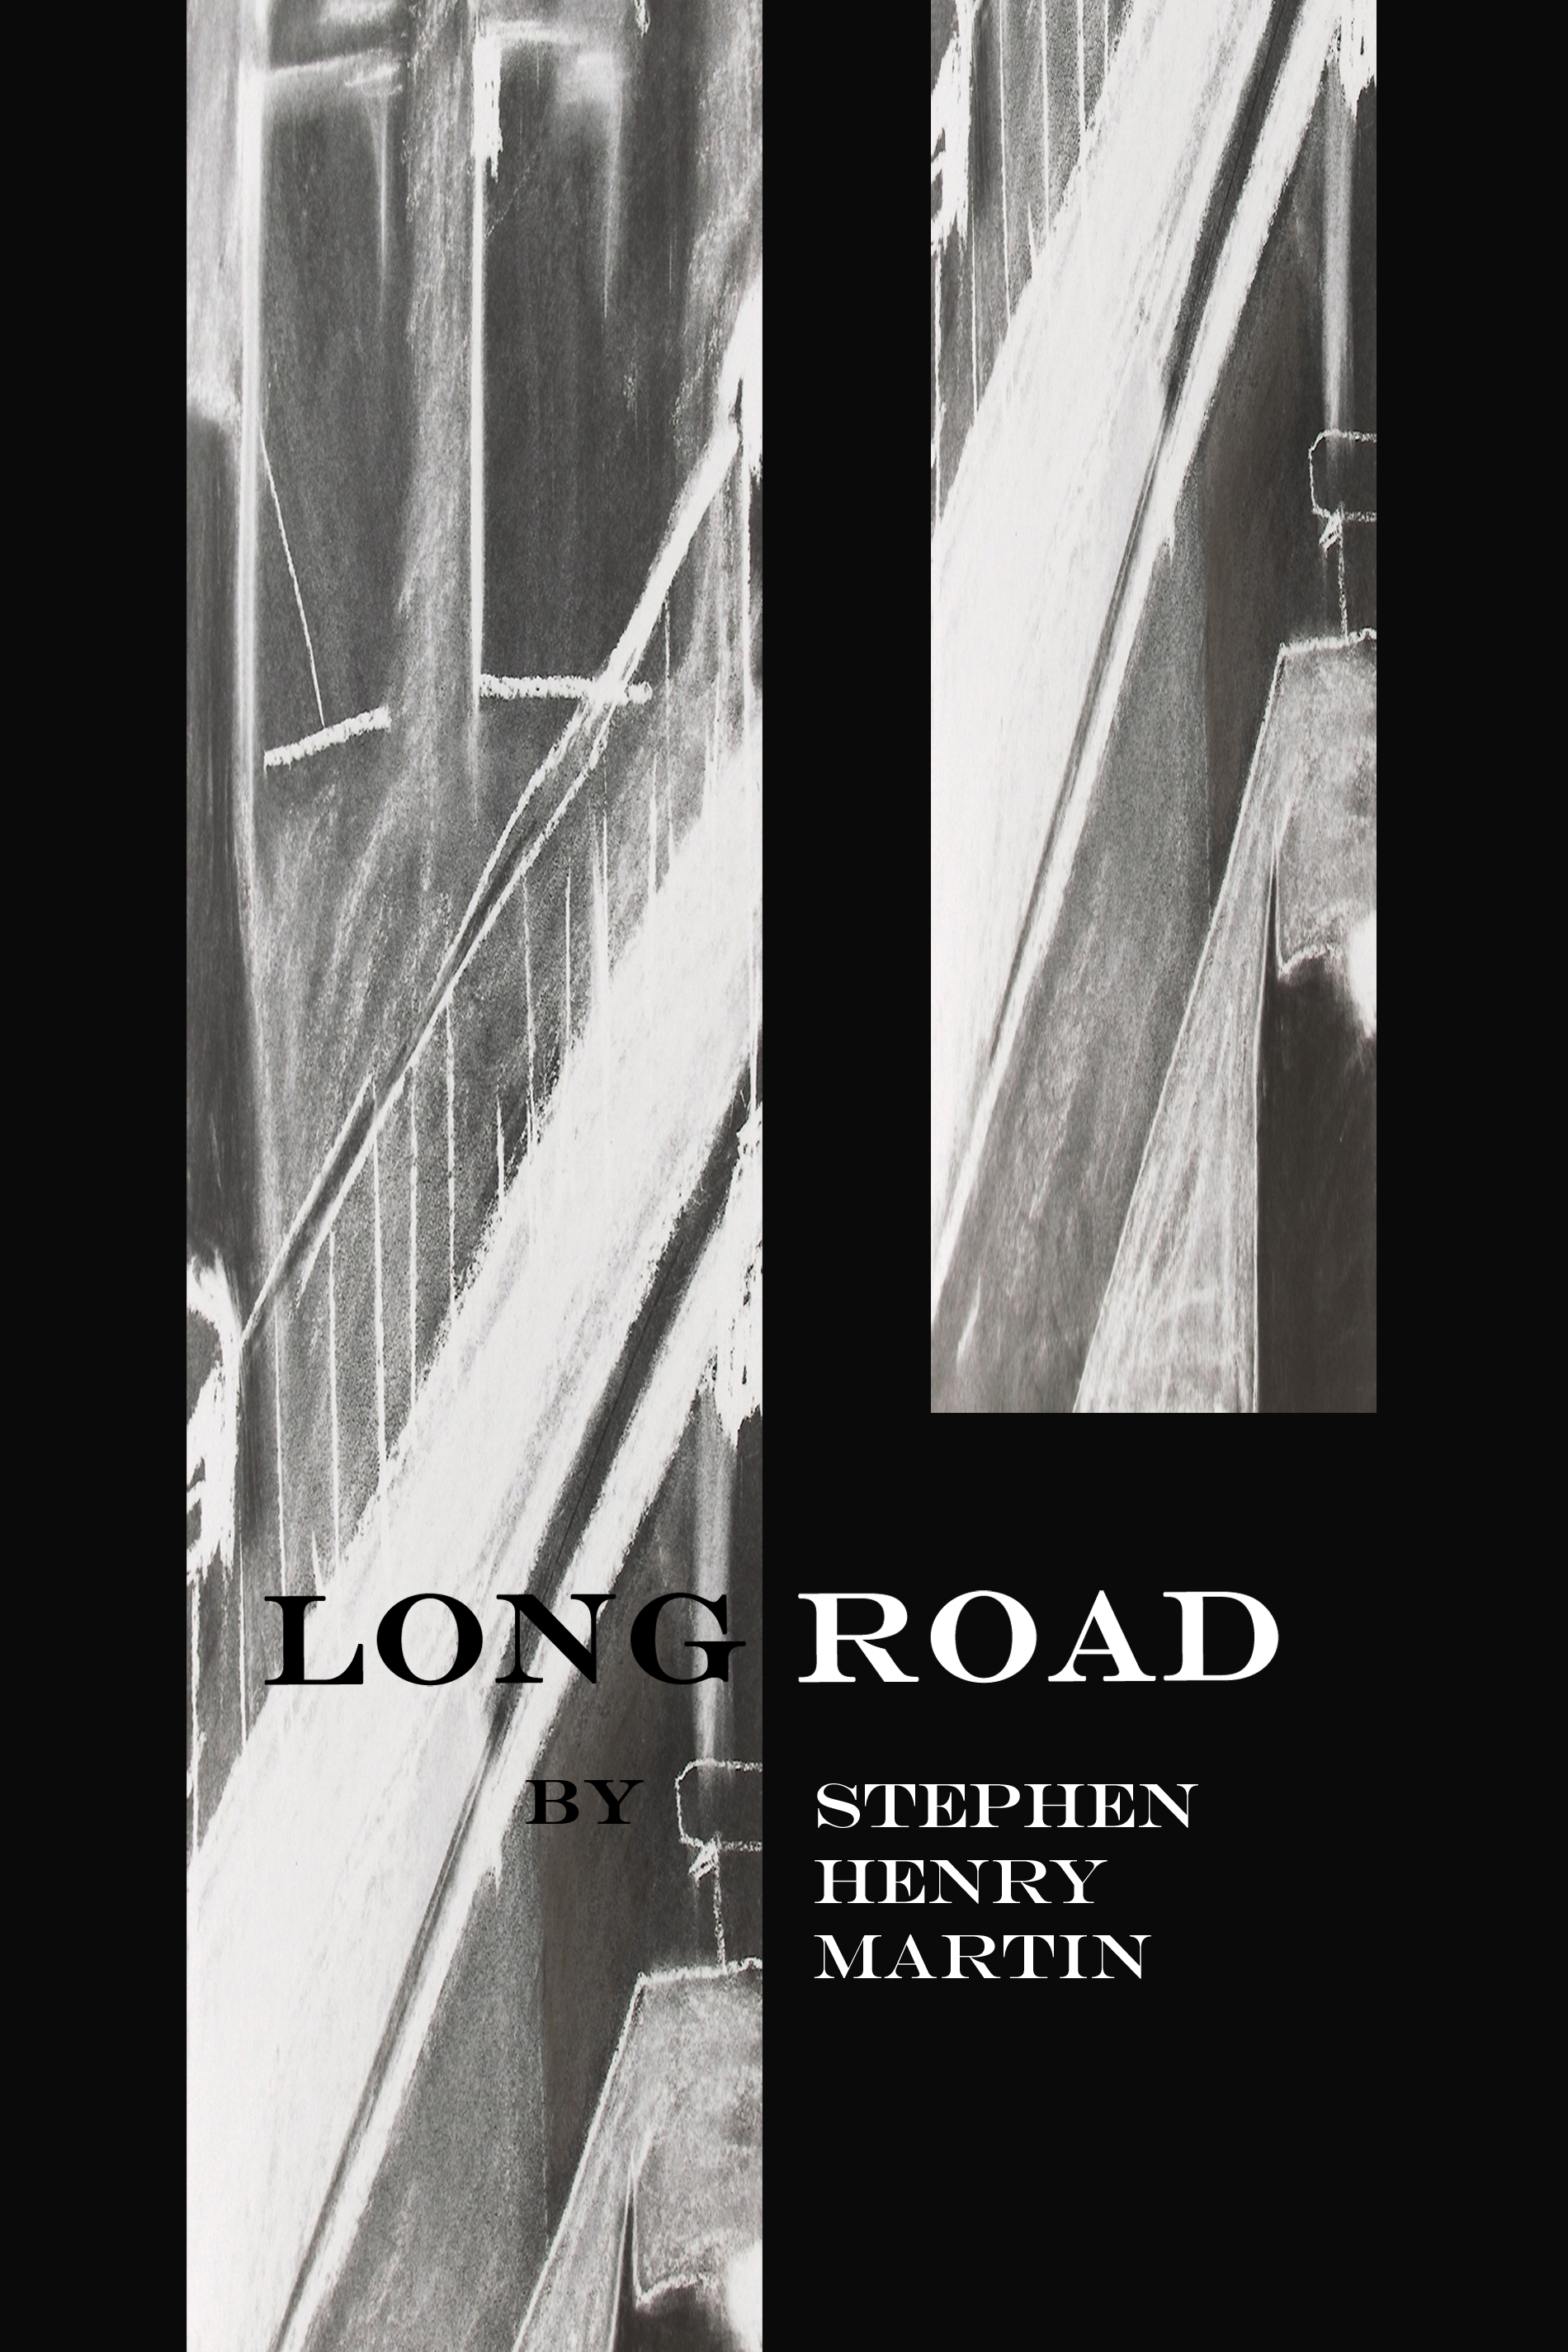 Jenn Cole, Steven Henry Martin  Christopher Dutton - Long Road by Steven Henry Martin